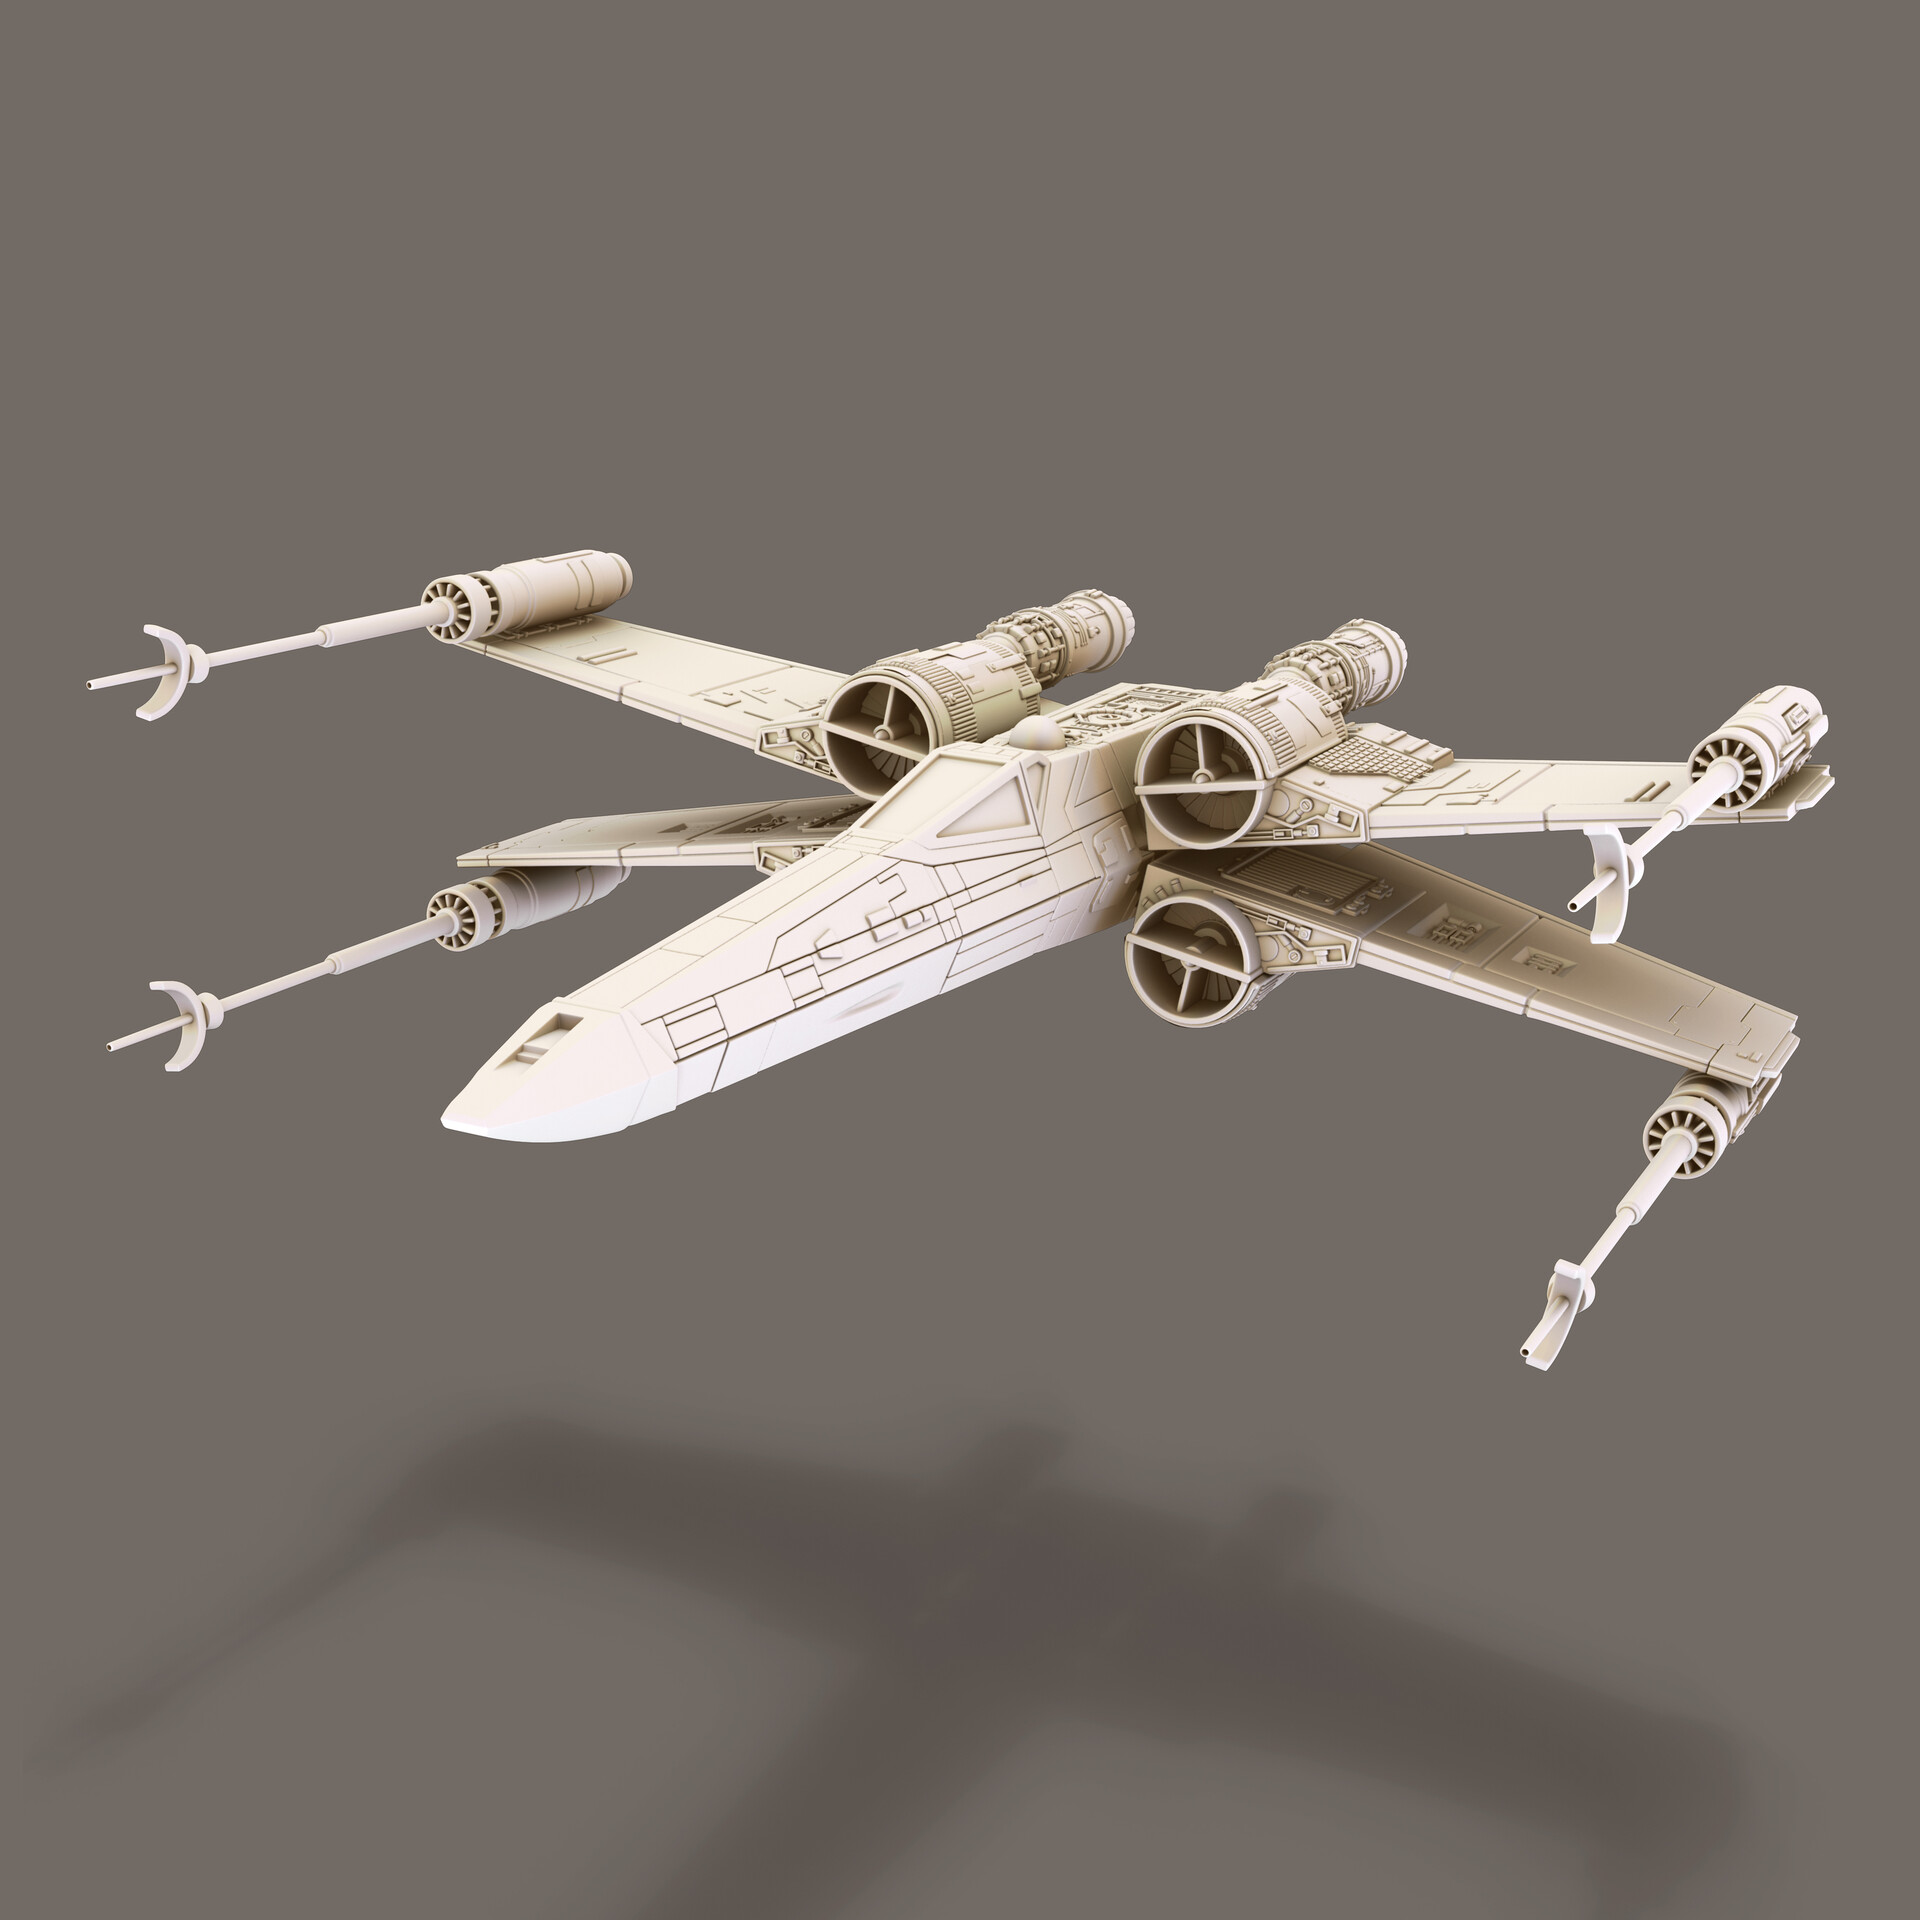 Christopher miller x wing blockout 12